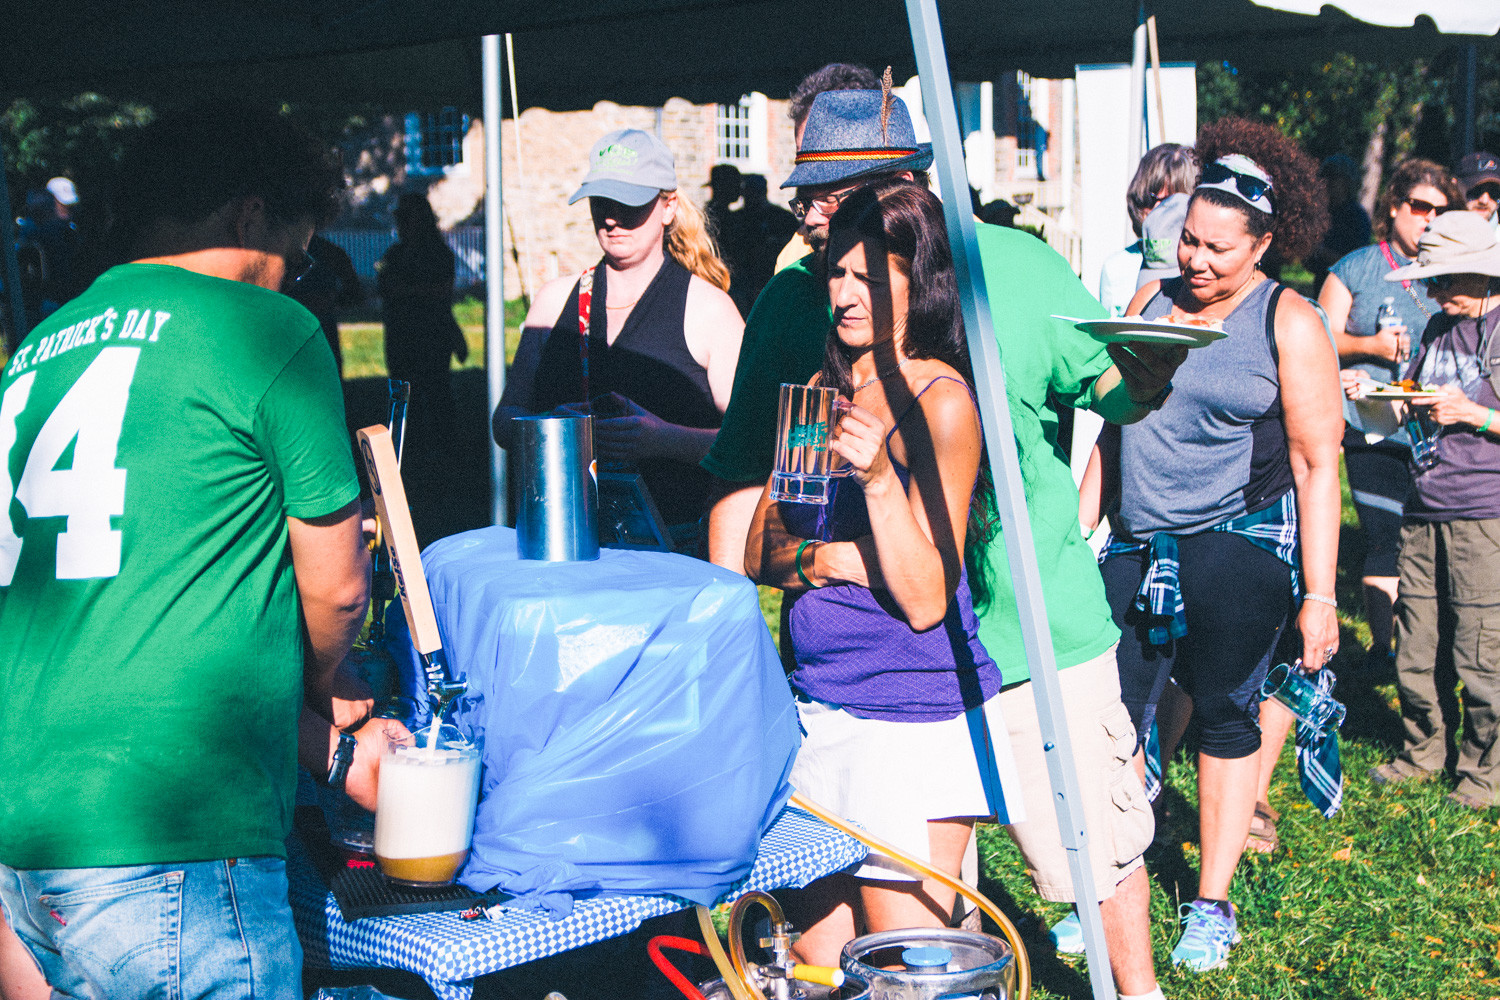 As the name suggests, beer was a focal point of Hike-toberfest 2017's festivities. Here, a group of hikers wait to be served locally brewed beer by employees from the Bronx Beer Hall.